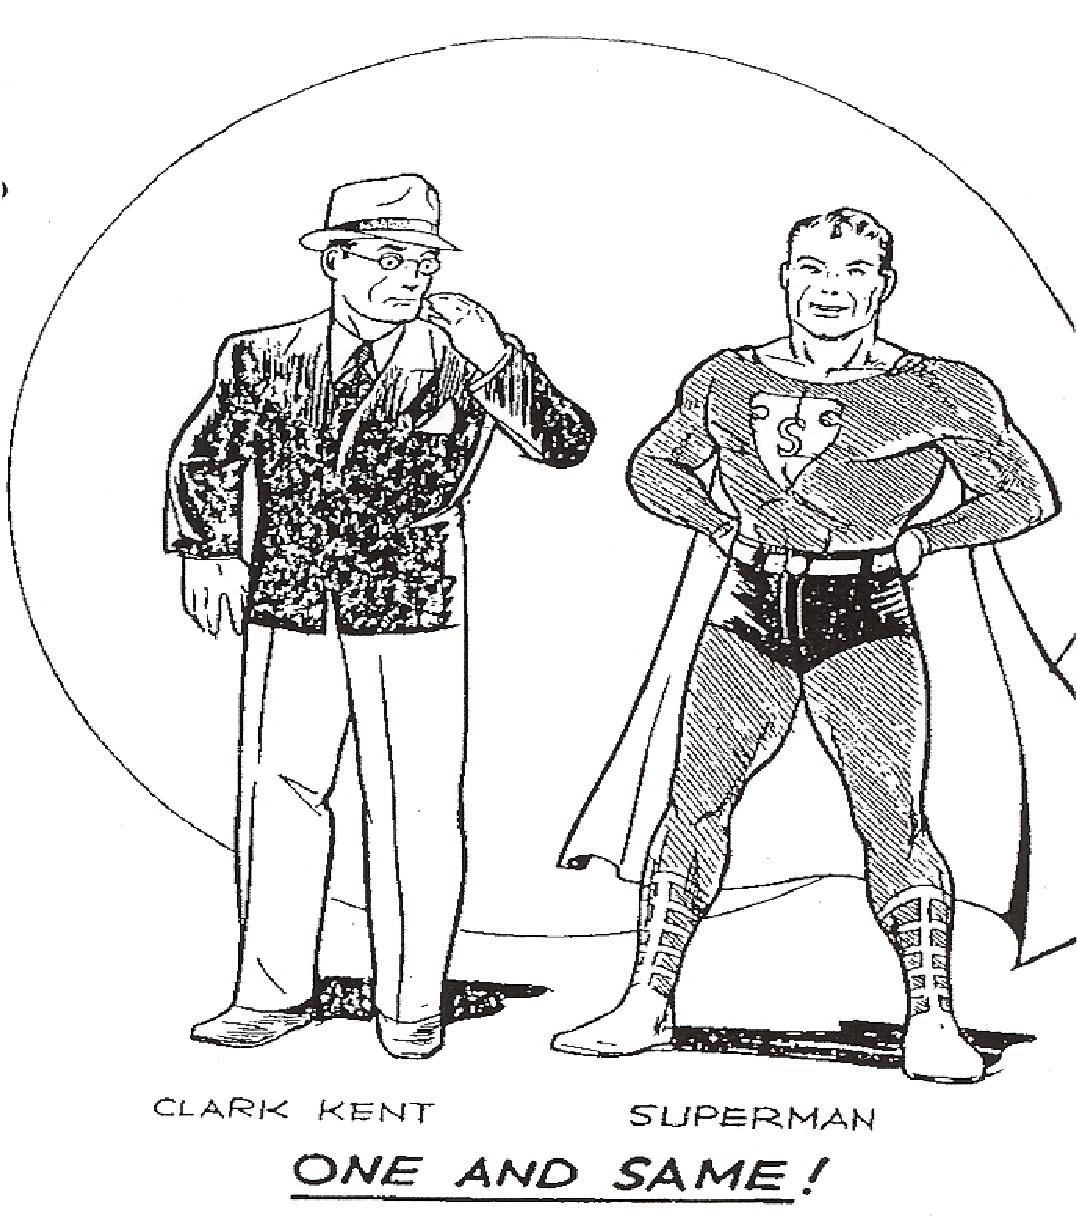 Some of the earliest Superman artwork...